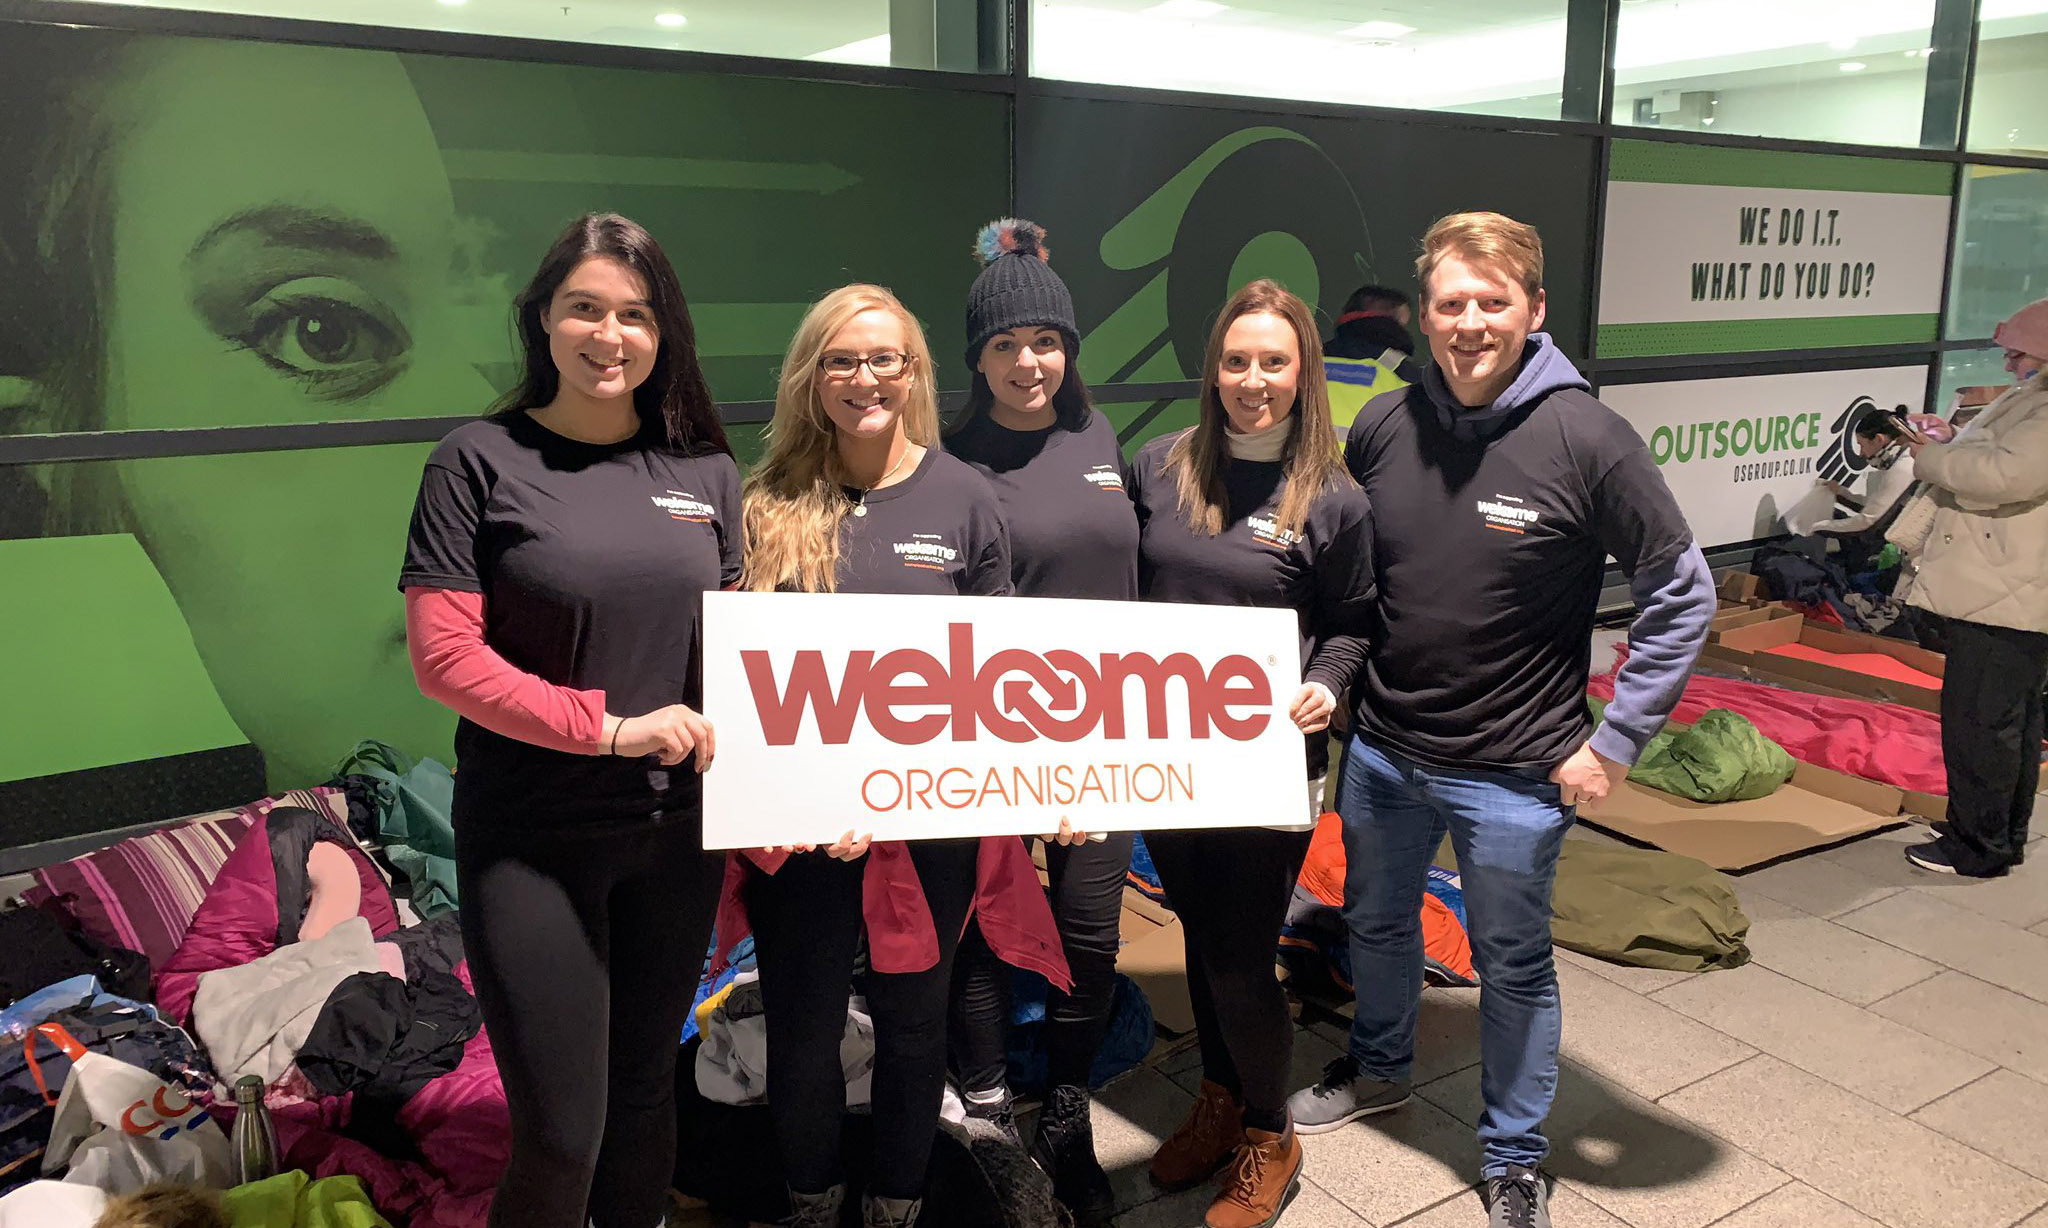 Welcomeorg sleepout